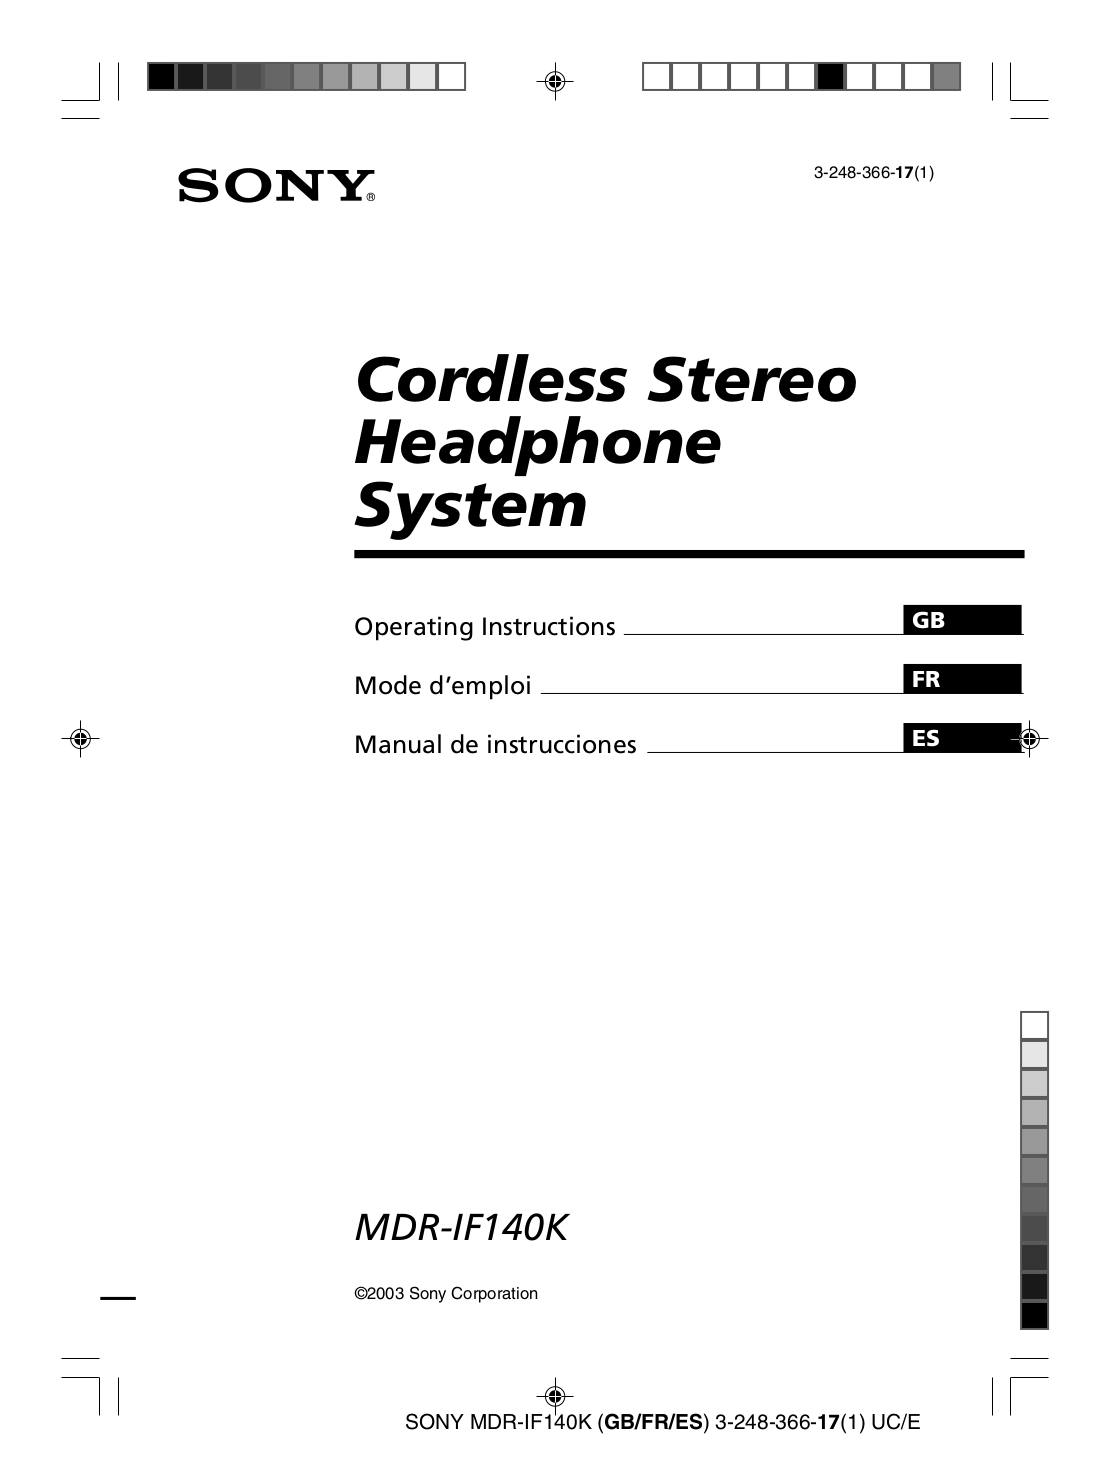 Download free pdf for Sony MDR-IF140 Headphone manual